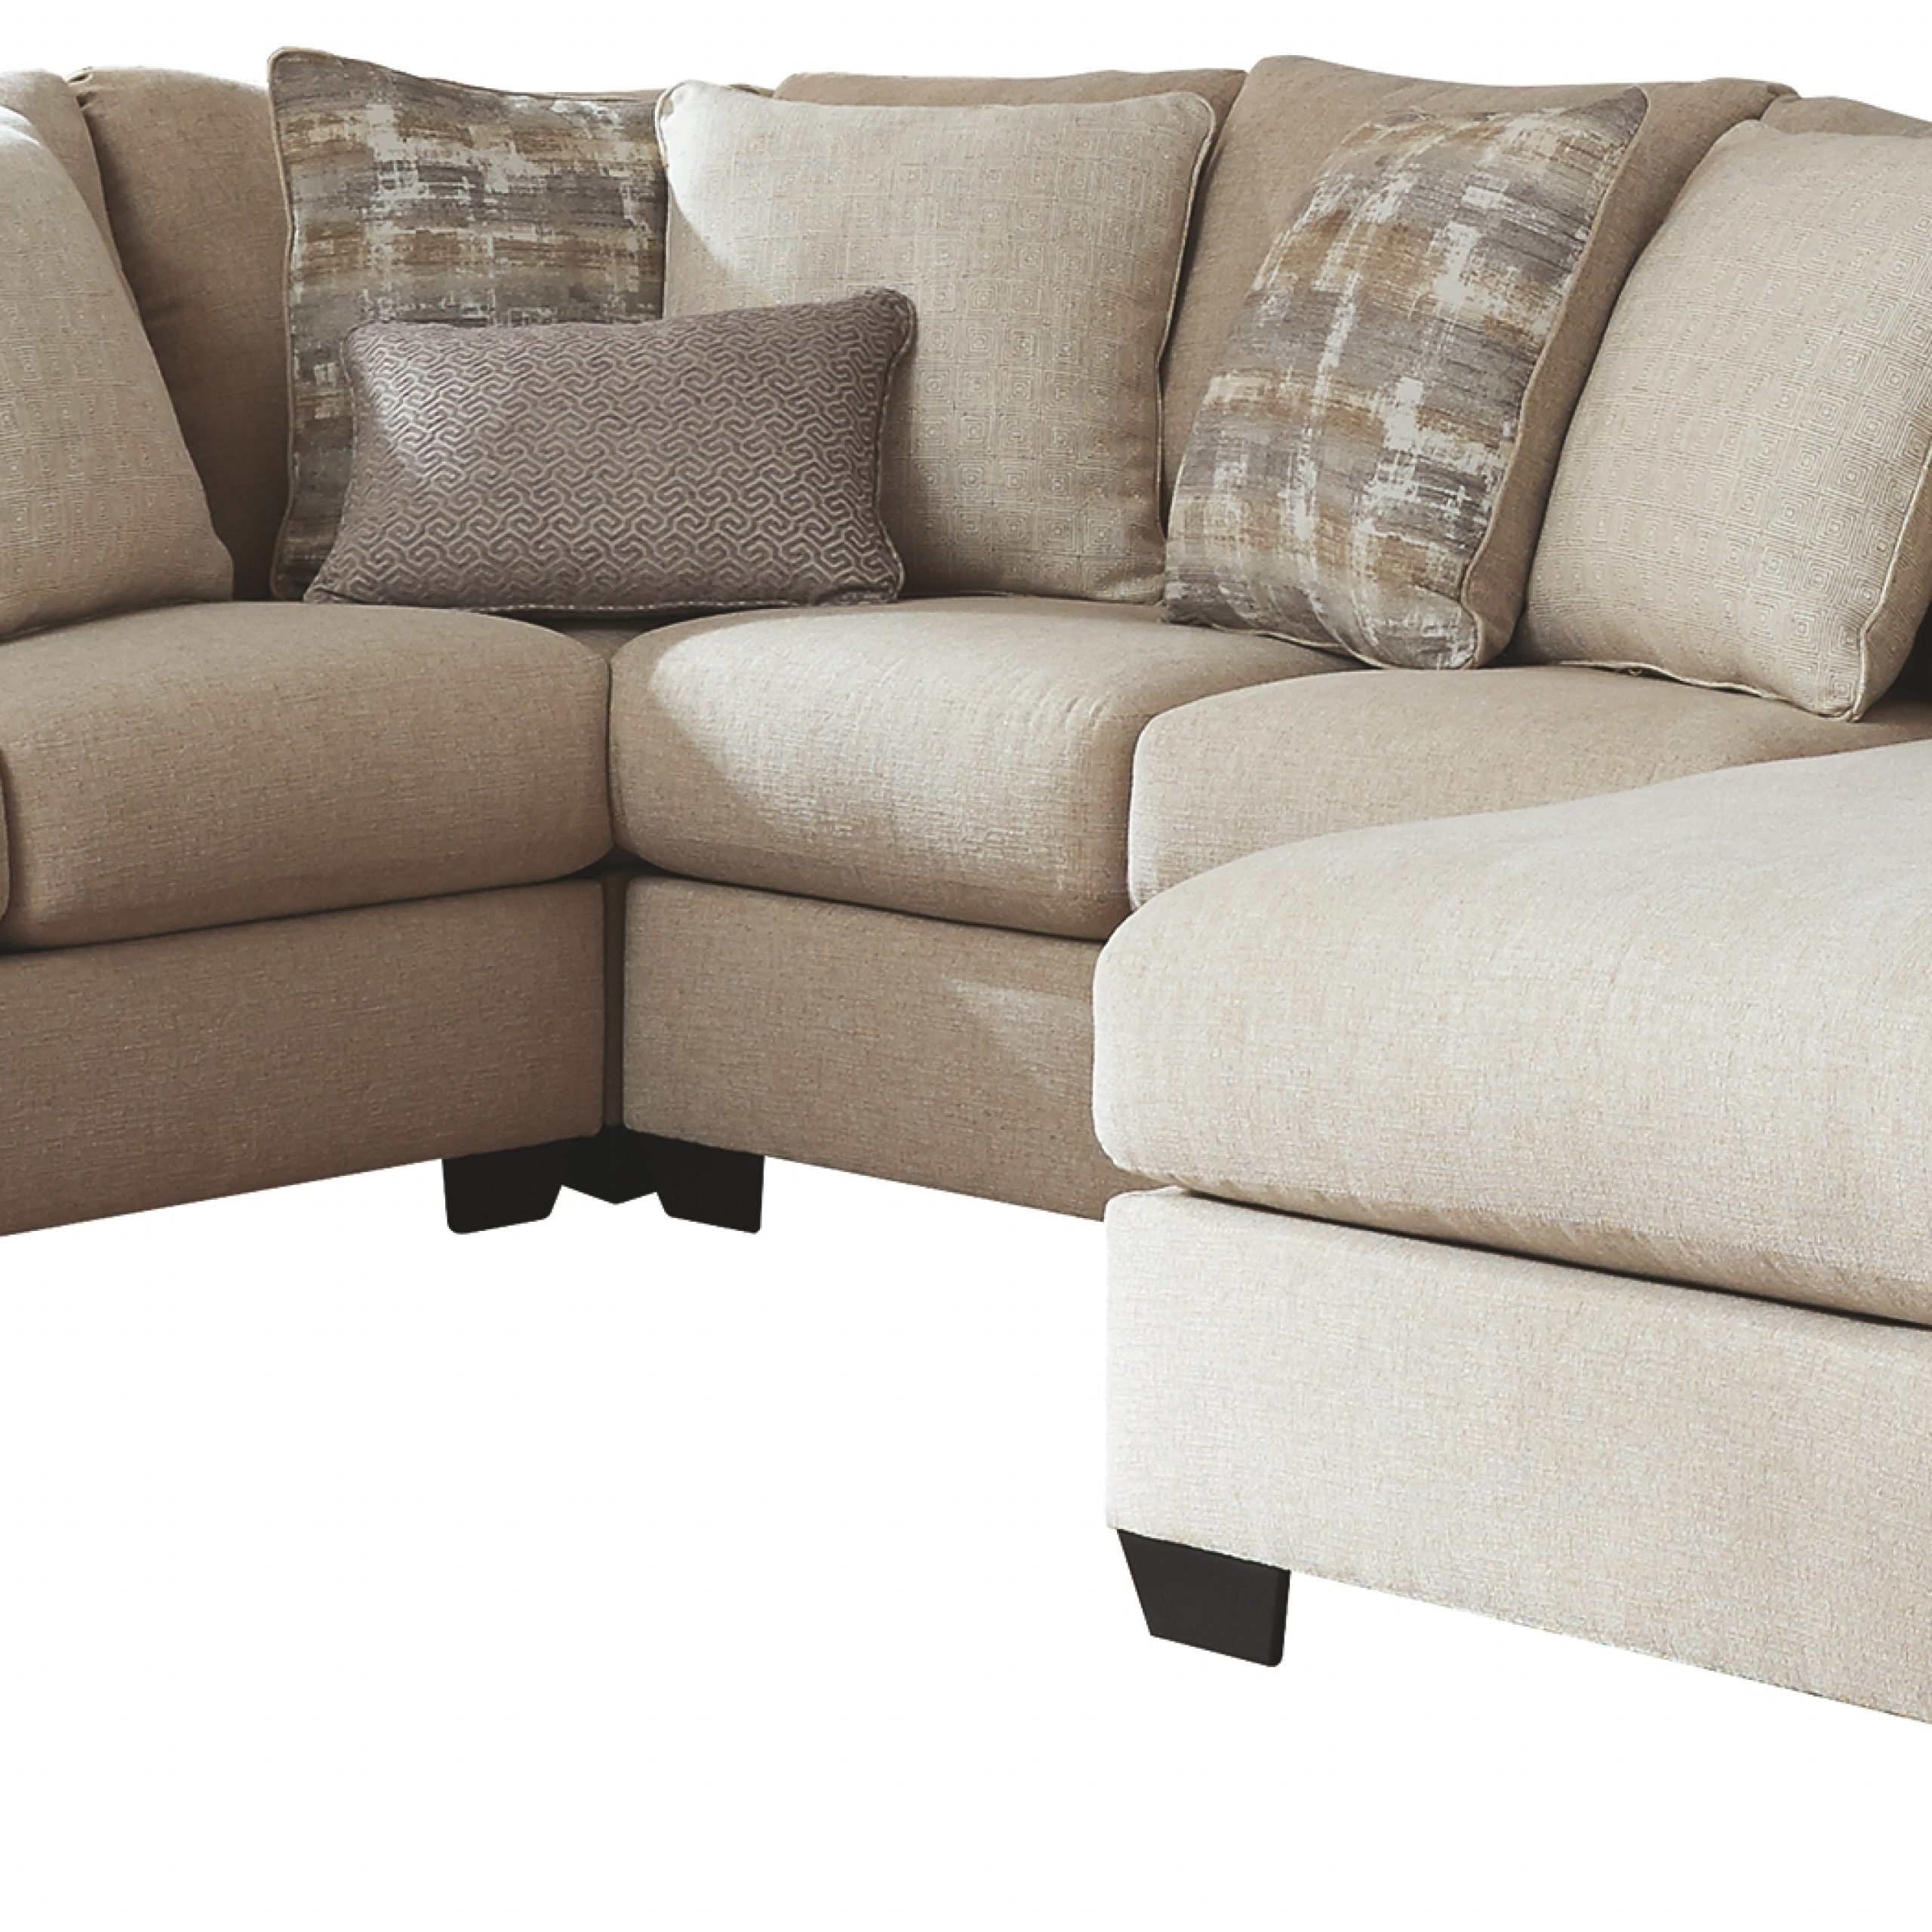 Ingleside 4 Piece Sectional With Chaisebenchcraft Regarding Benton 4 Piece Sectionals (View 6 of 15)